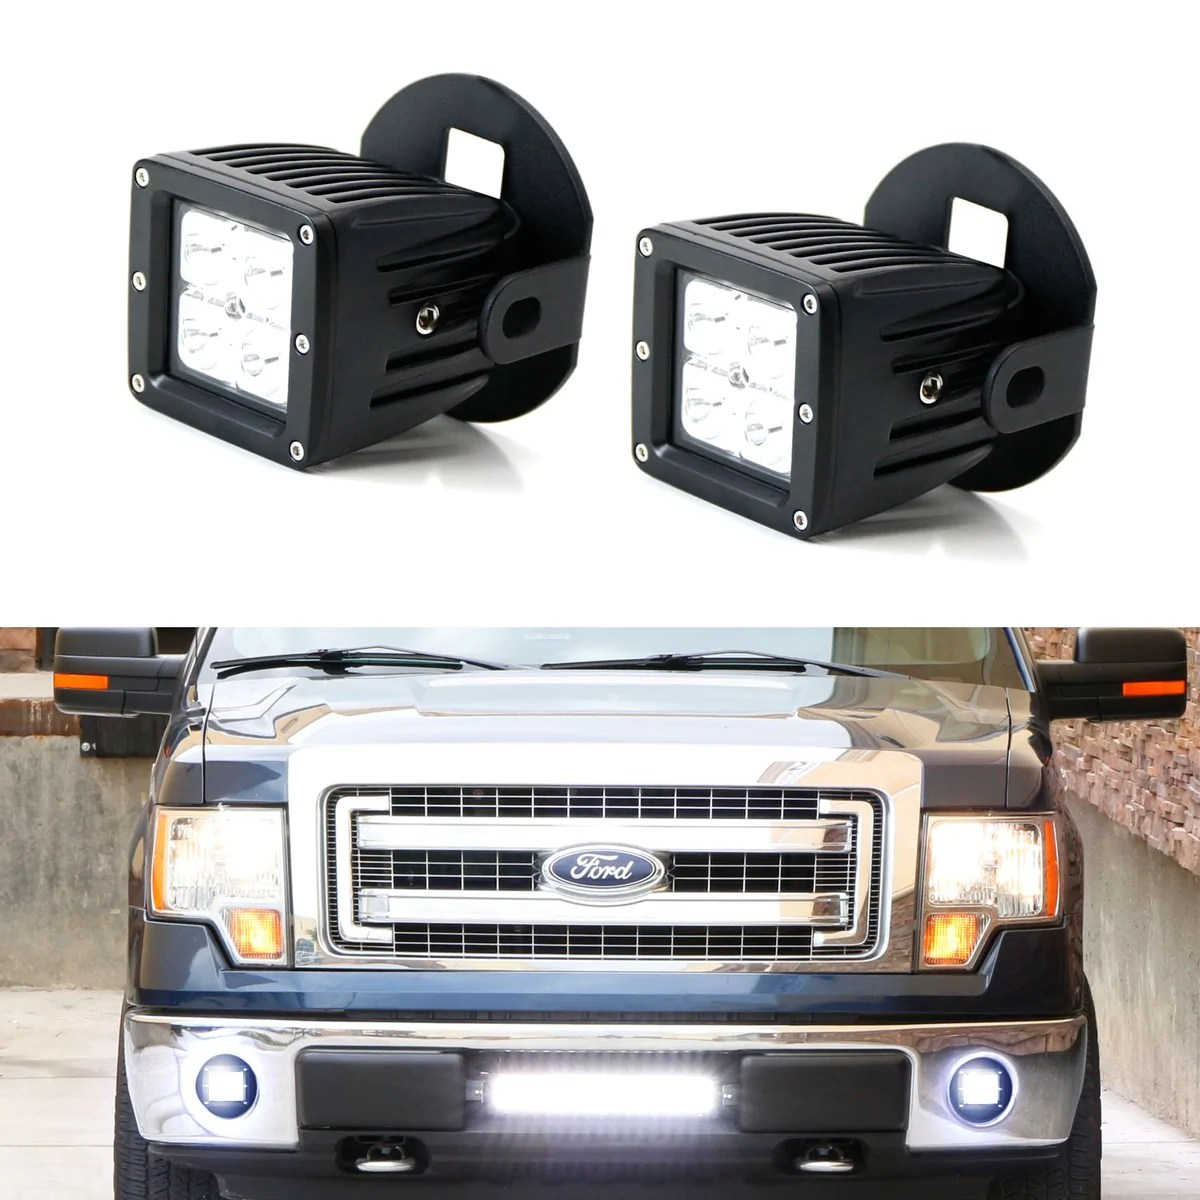 led pod light fog lamp kit for 2006 14 ford f150 2011 14 lincoln mark lt includes 2 20w high power cree led cubes foglight location mounting brackets  [ 1200 x 1200 Pixel ]